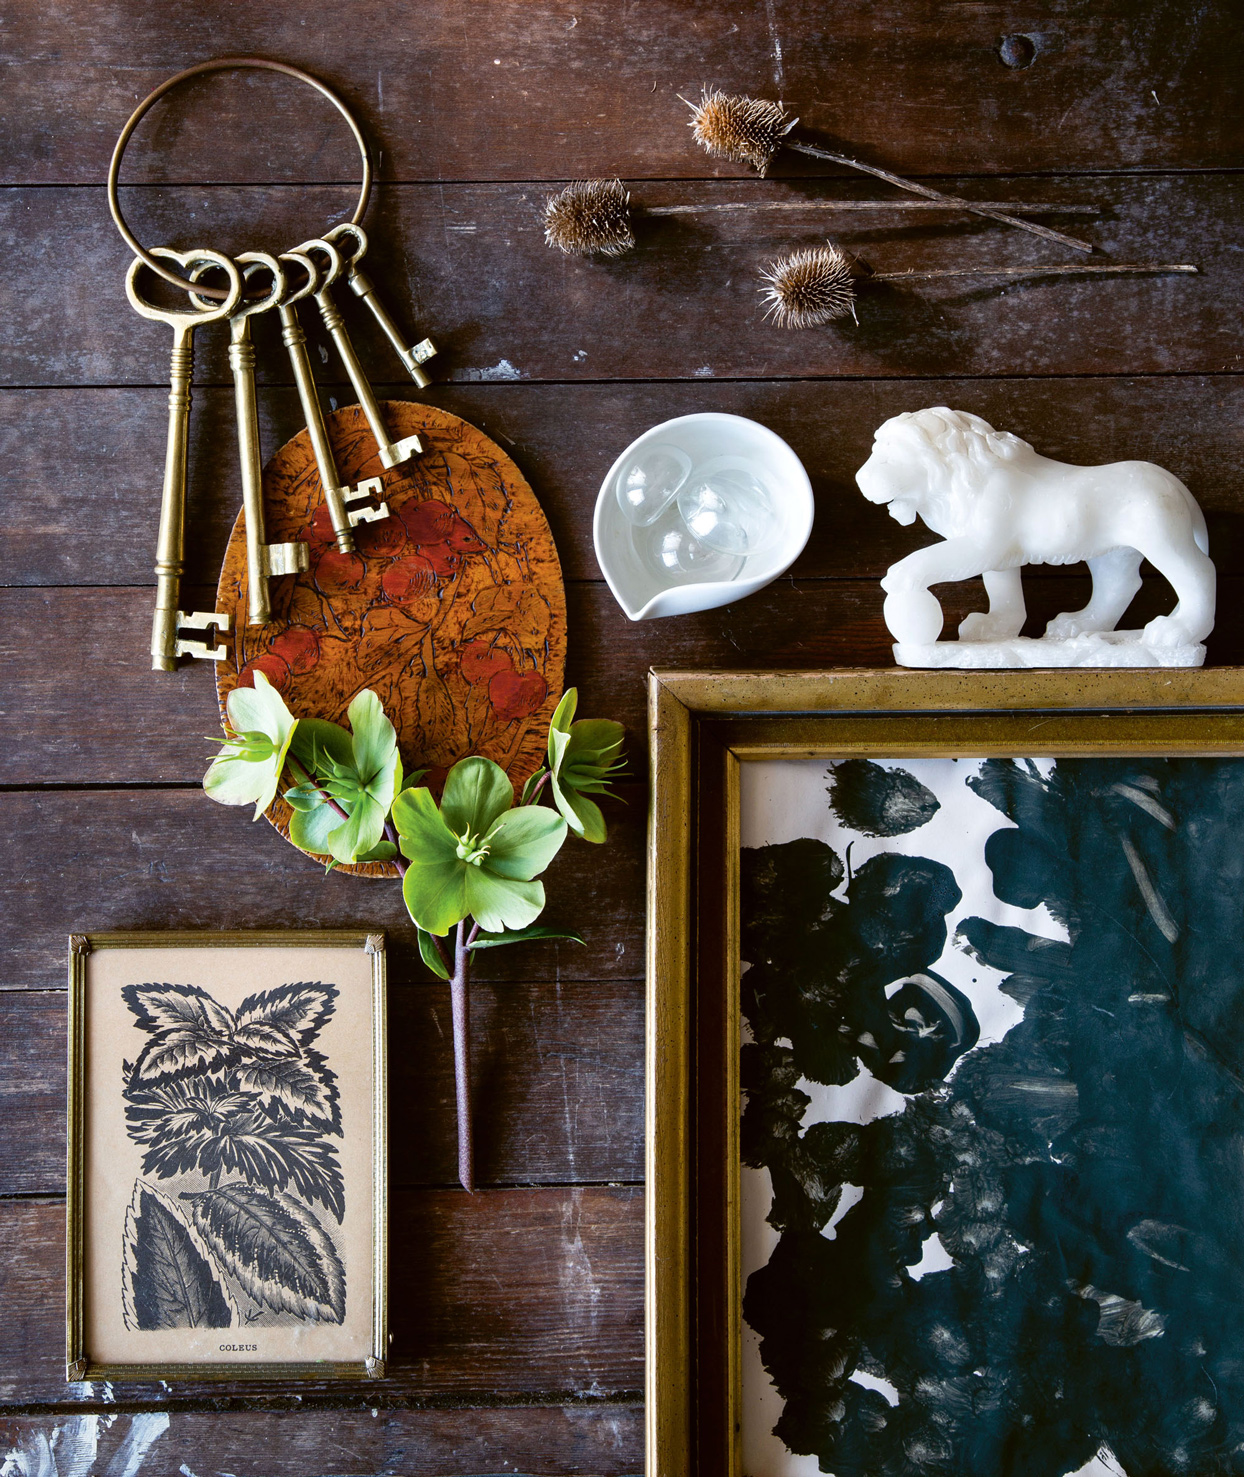 finger painting and personal antique objects